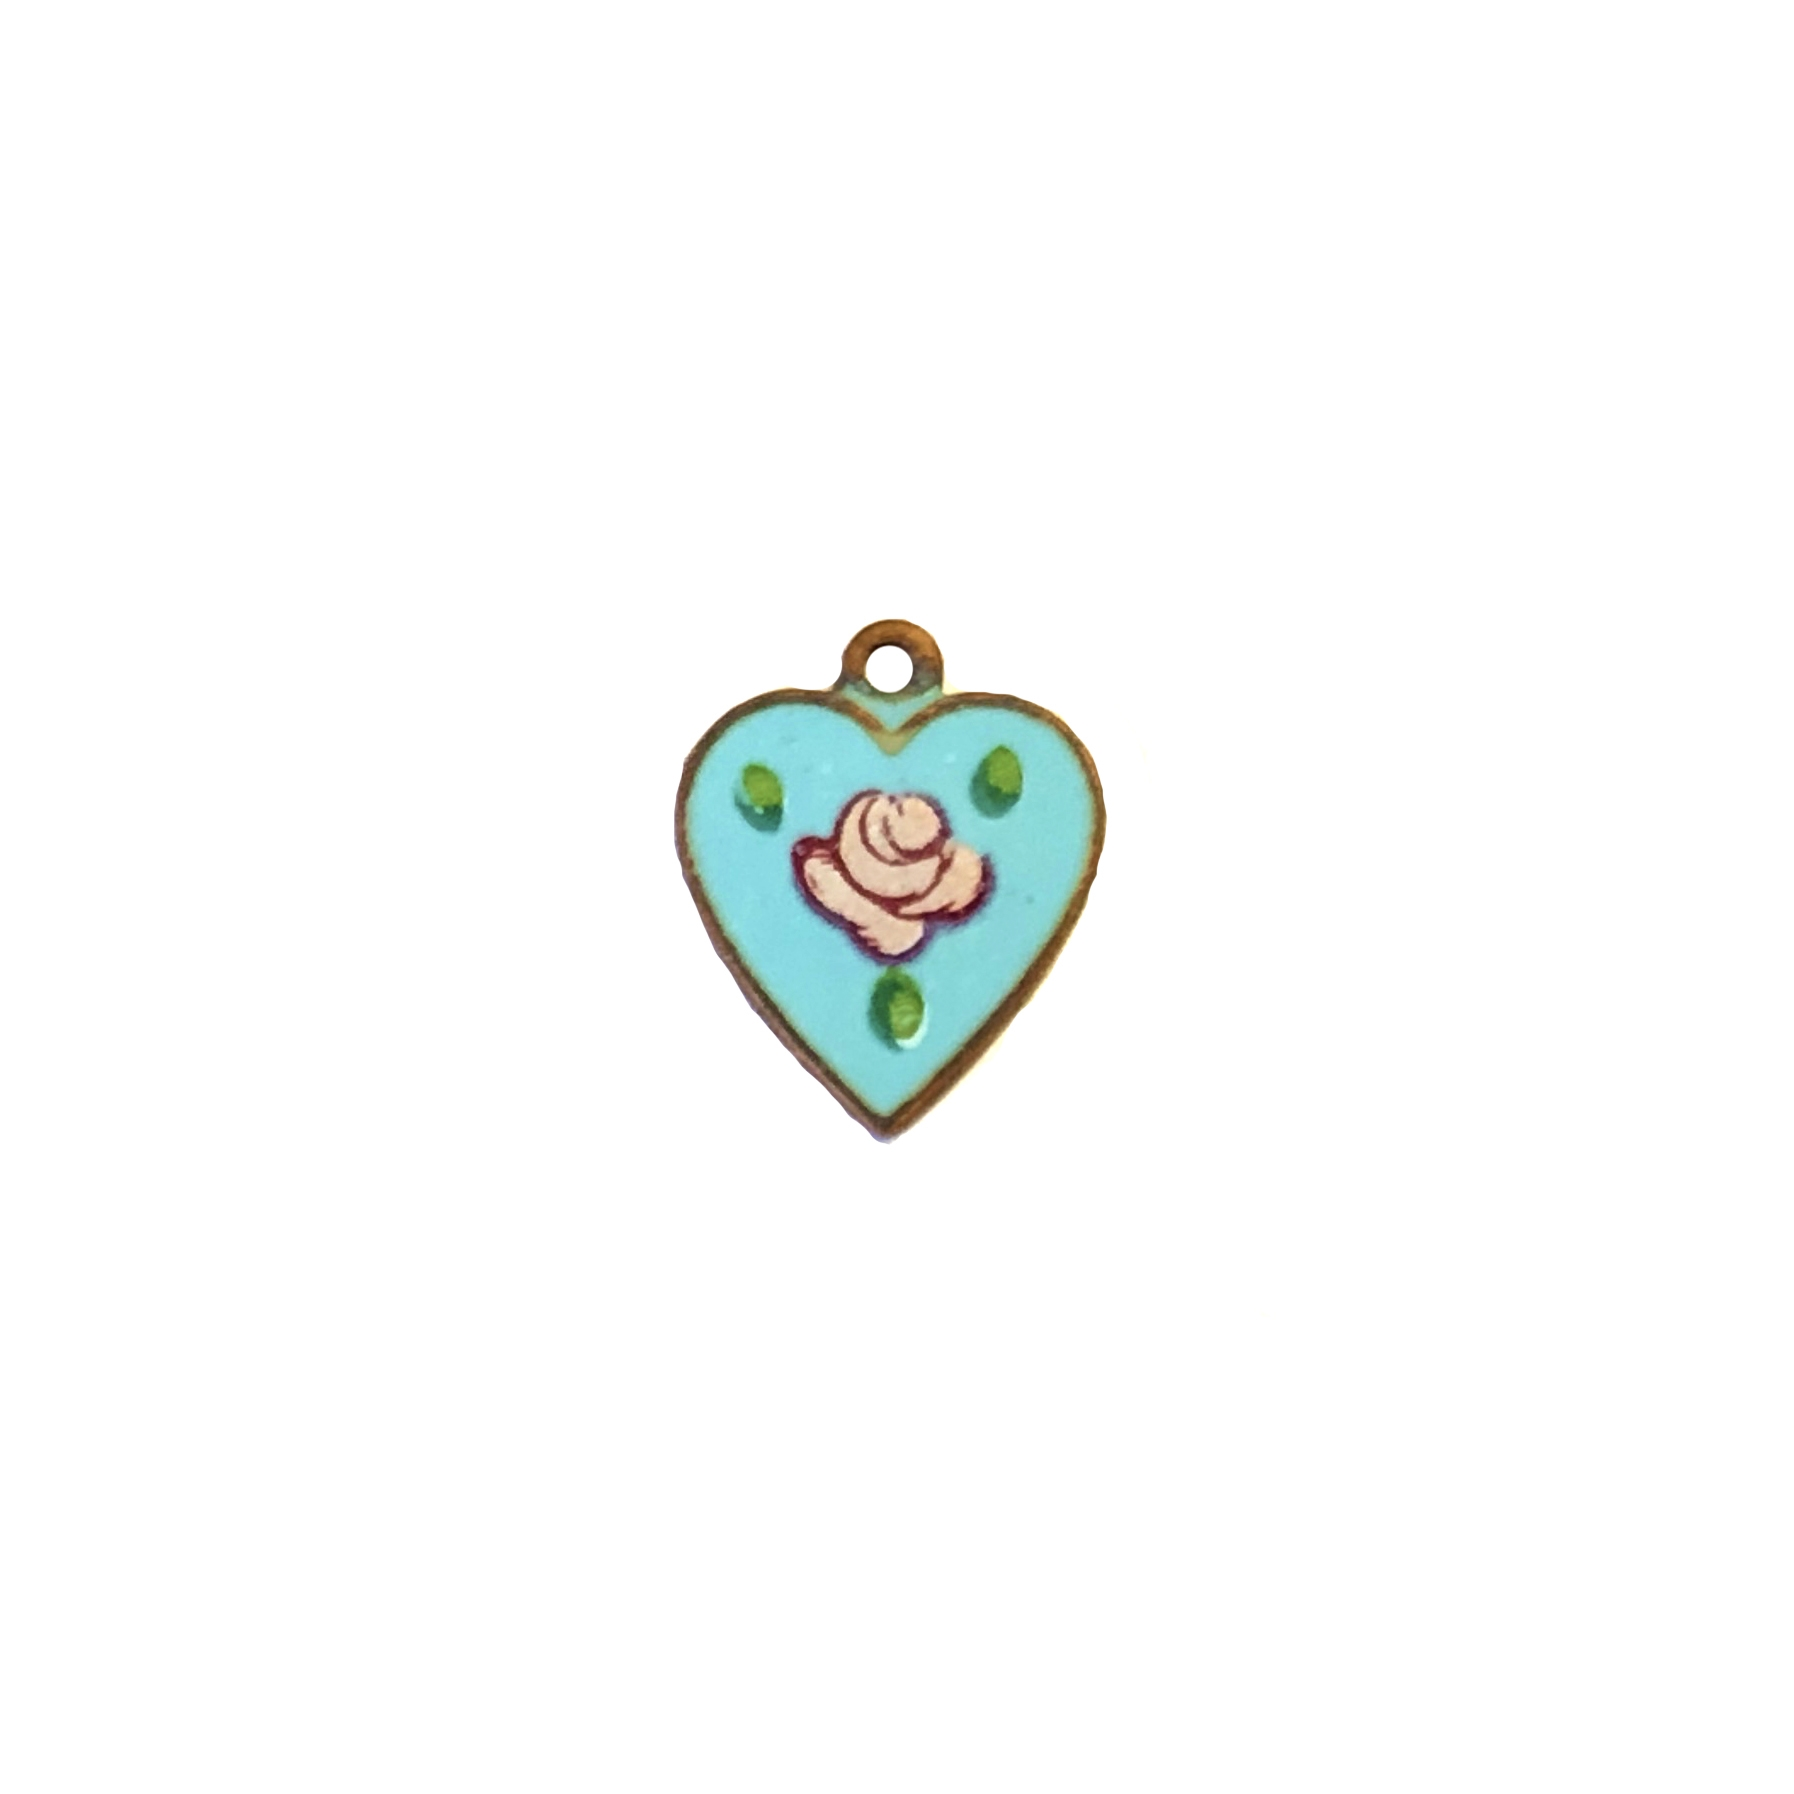 patina brass, blue enamel heart charm, 09027, heart pendant, heart charm, brass heart, heart, jewelry making, jewelry supplies, Bsue Boutiques, nickel free, US made, heart findings, rose heart charm, pink rose heart